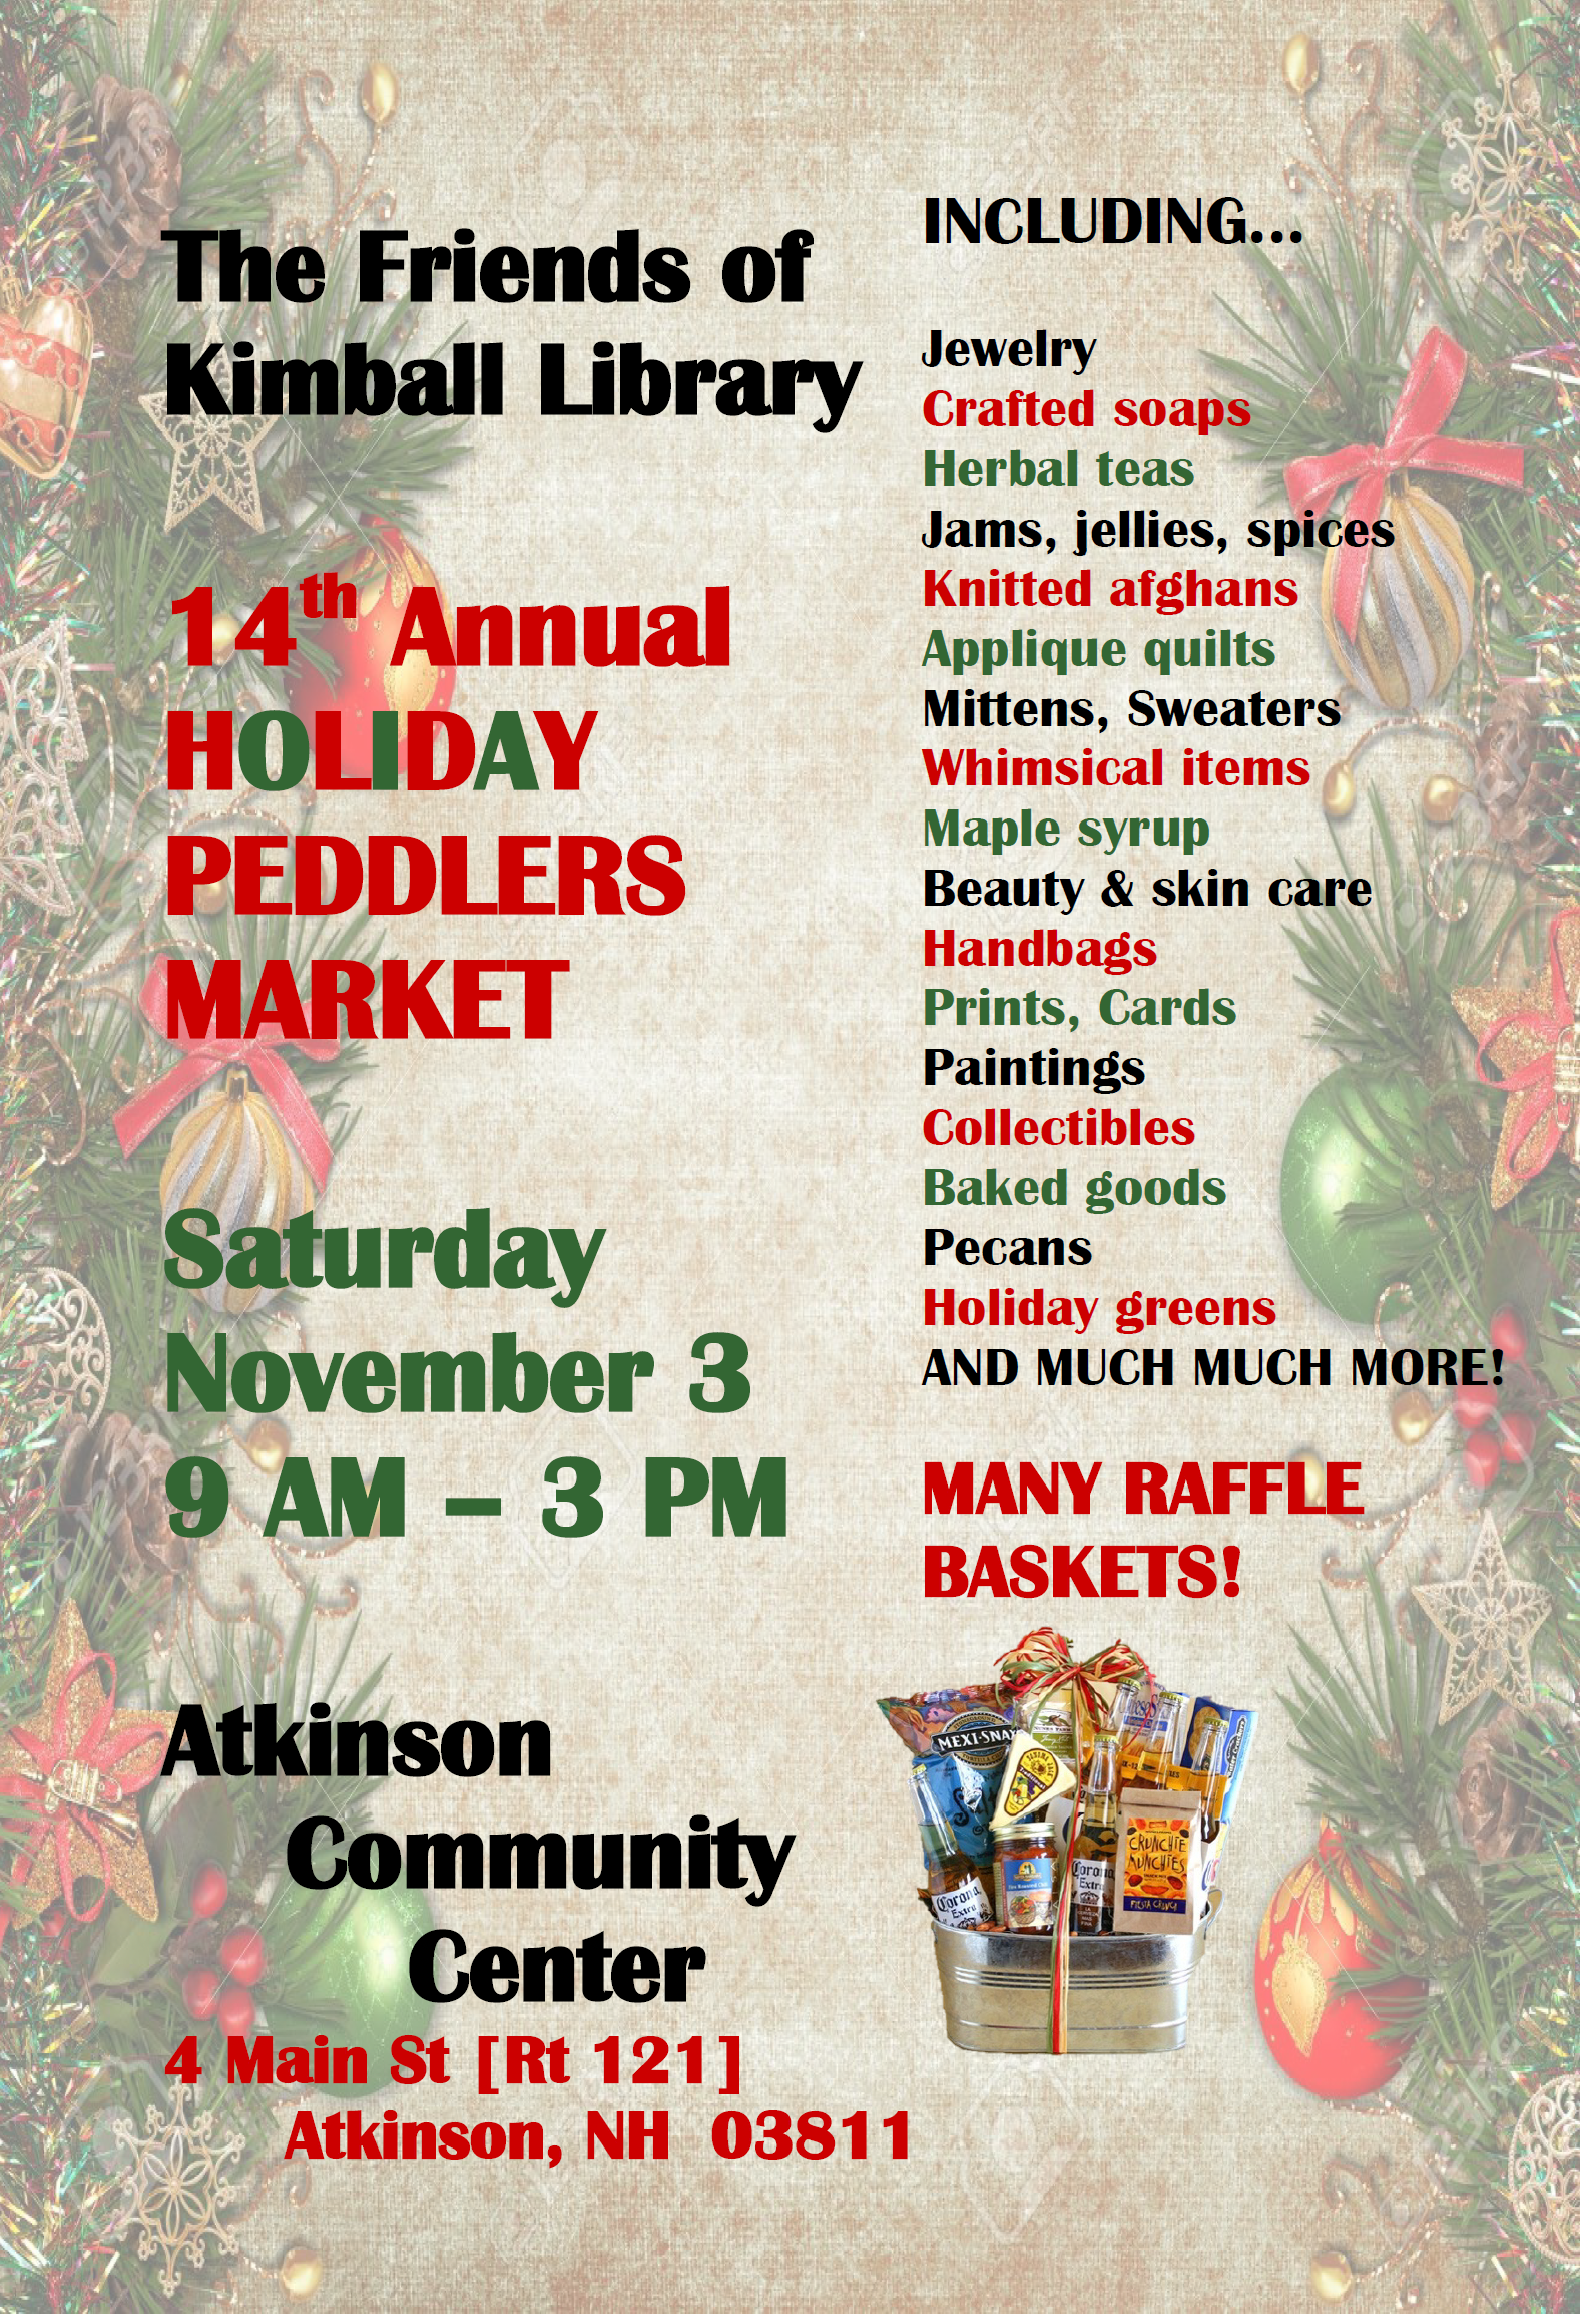 14th Annual Holiday Peddlers Market: November 3, 2018, 9am-3pm @Atkinson Community Center